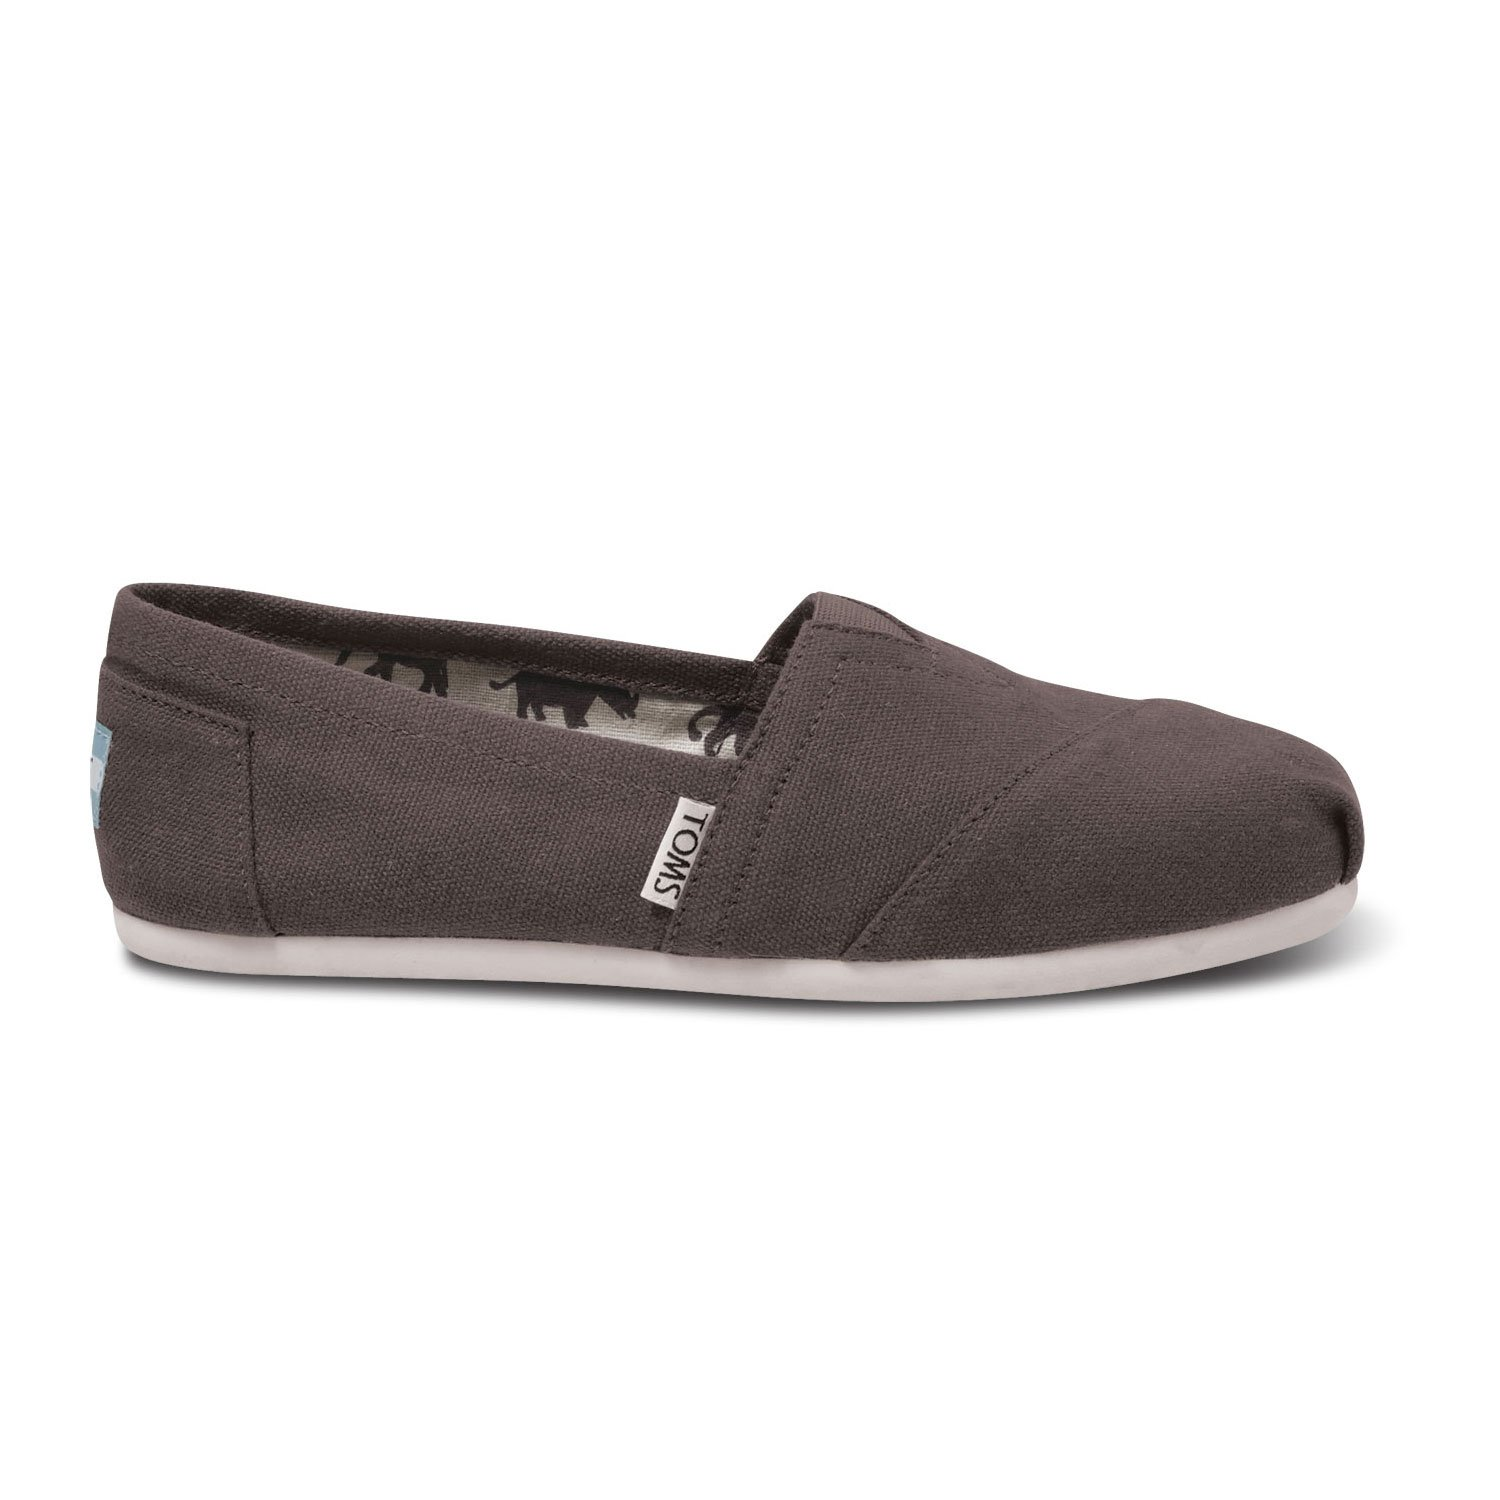 TOMS Women's Classic Canvas Slip-On,Ash,7 M US